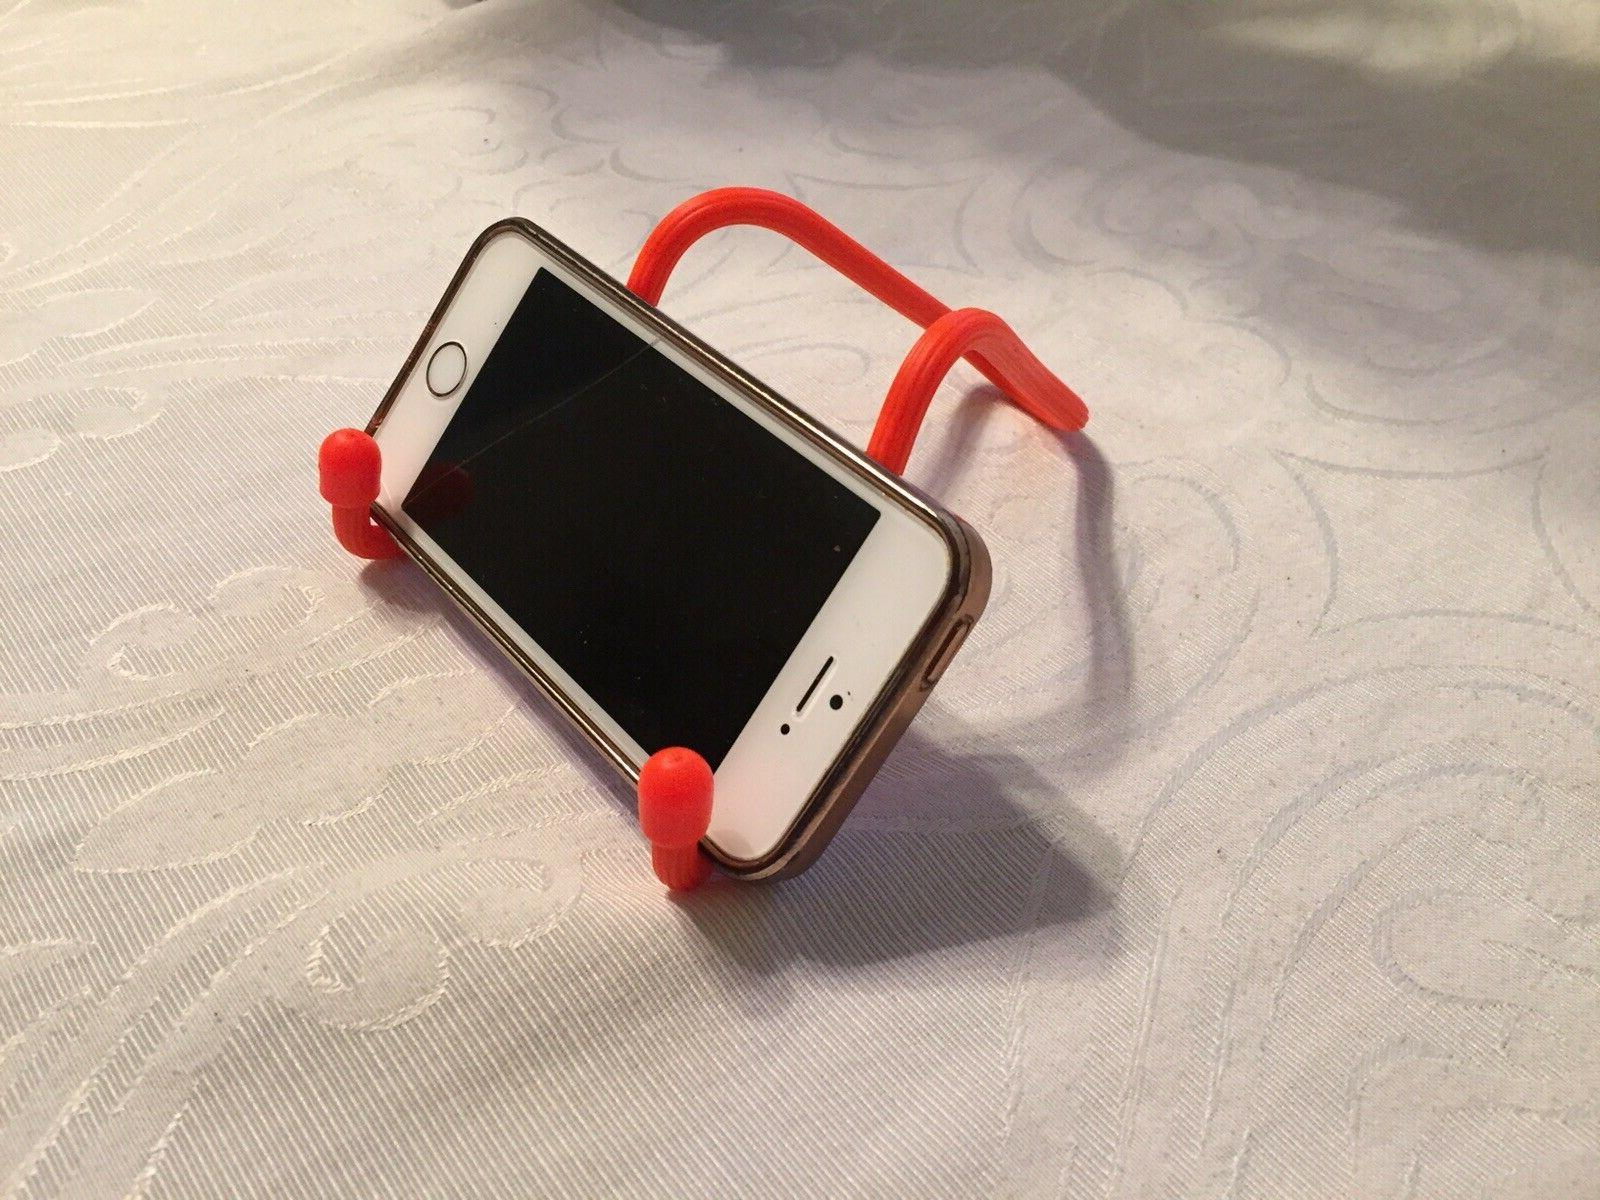 iPhone Tablet/Device Holder For Planes Home Customize For Your Use